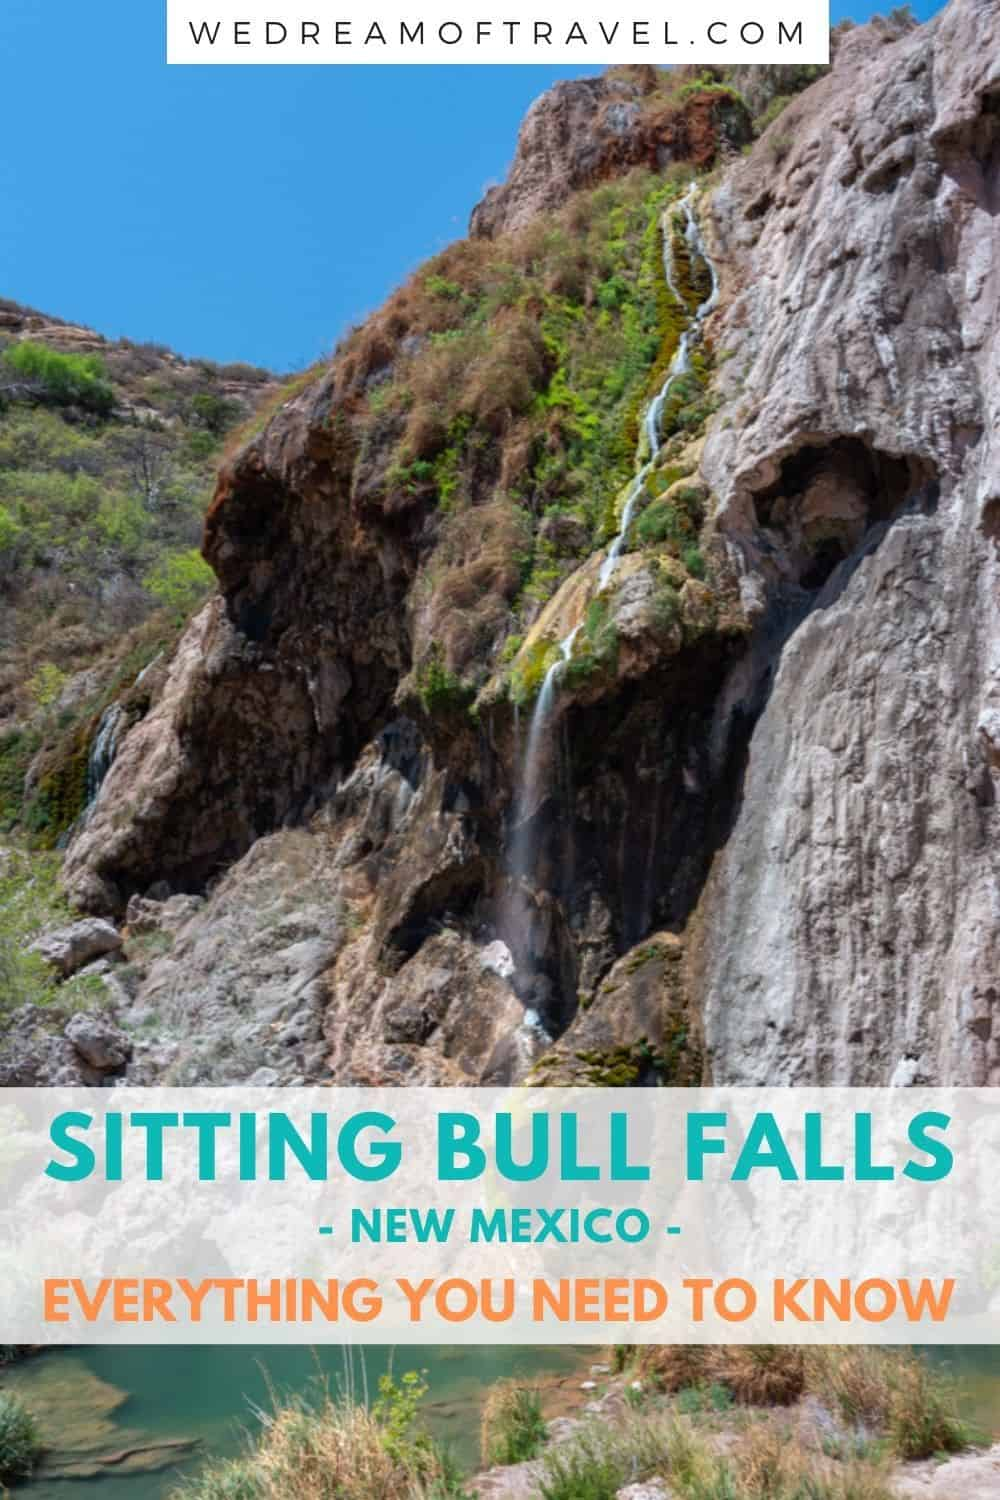 Sitting Bull Falls in New Mexico provides an oasis in the middle of the desert!  Discover everything you need to know about visiting these magical waterfalls.  #NewMexico #SittingBullFalls